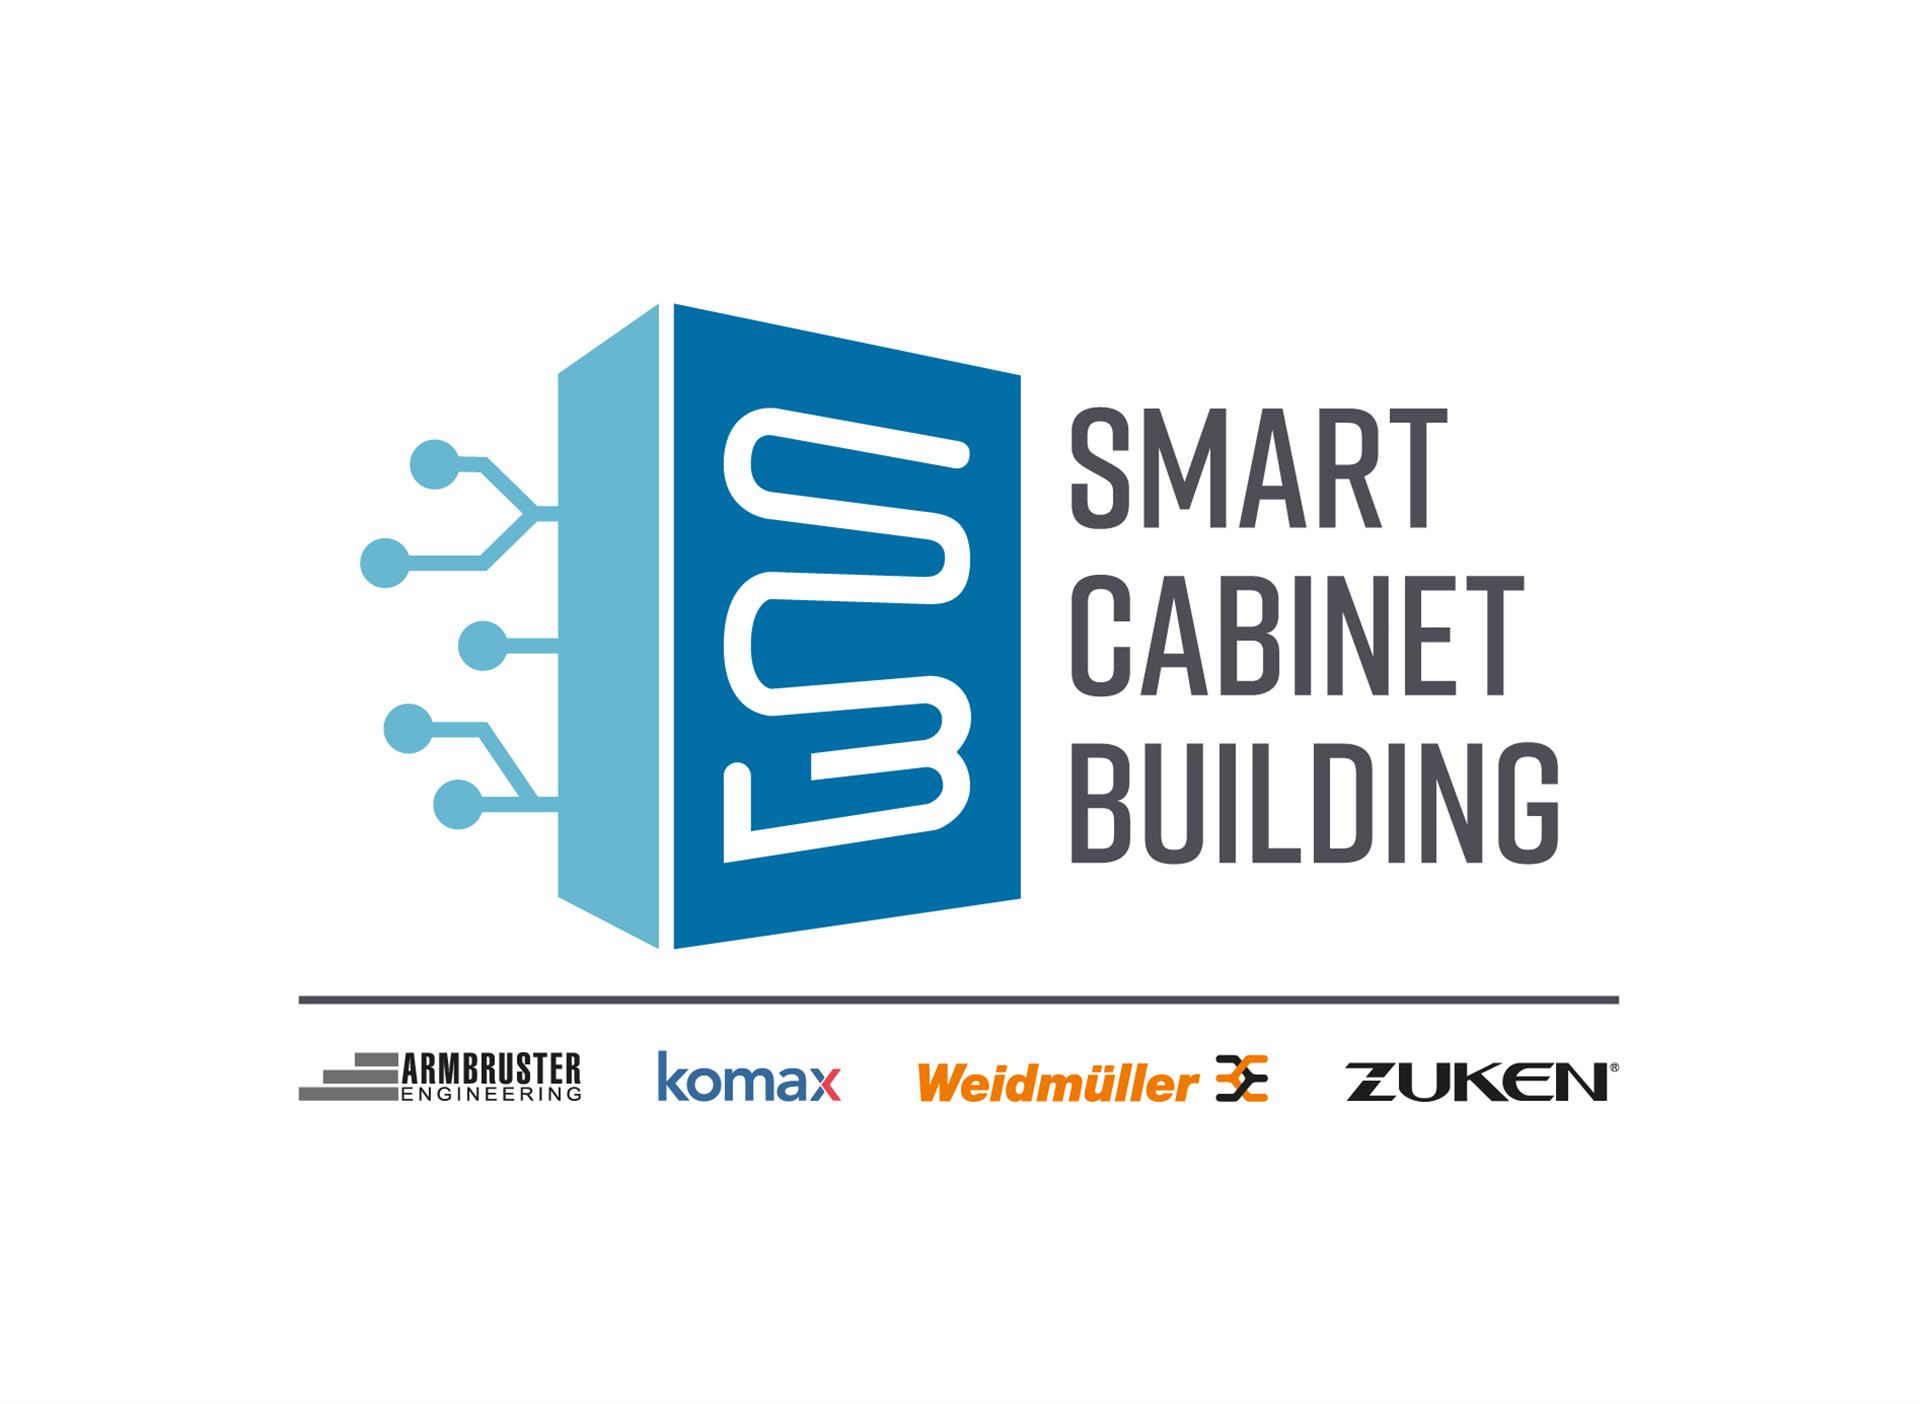 Smart Cabinet Building - Digital solutions for switch cabinet construction